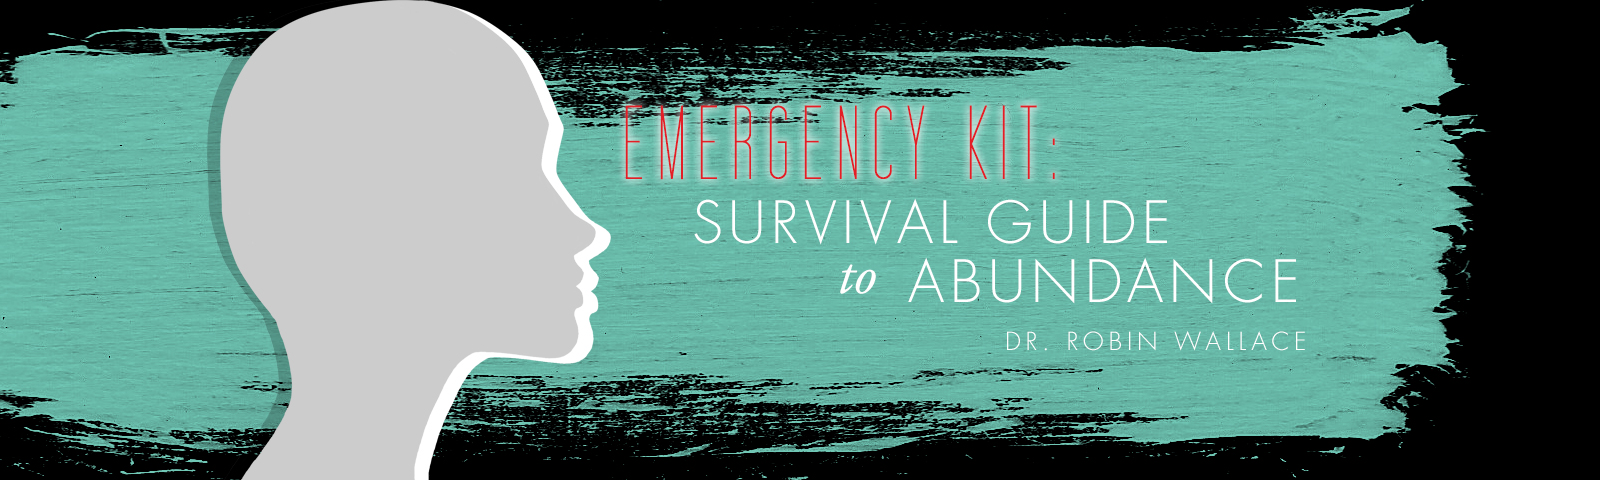 Emergency Kit – Dr. Robin Wallace